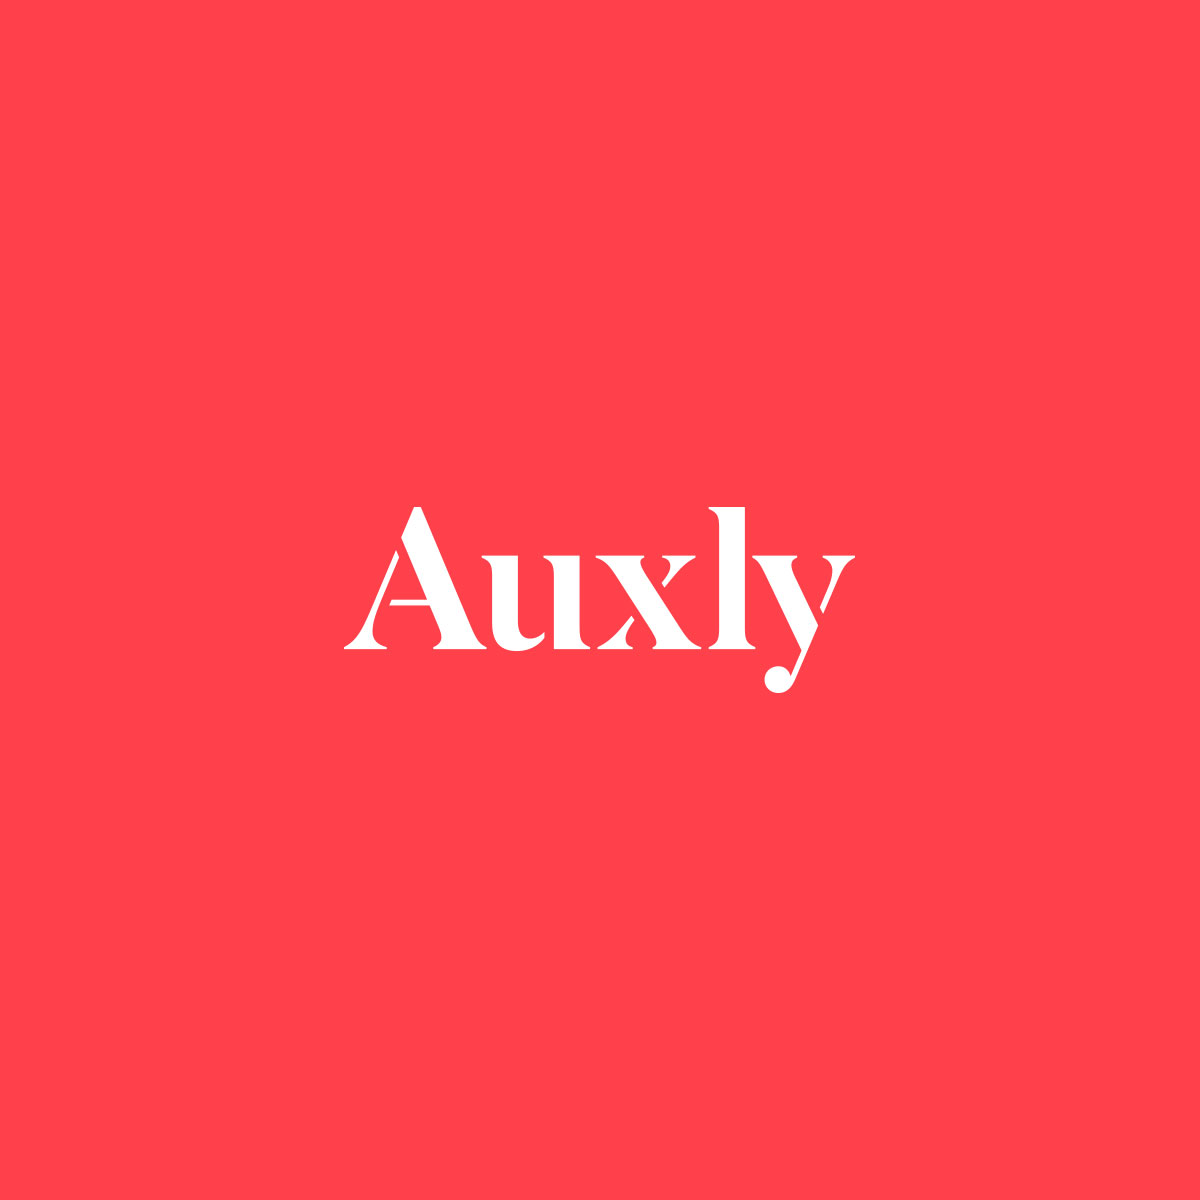 Team - This is Auxly